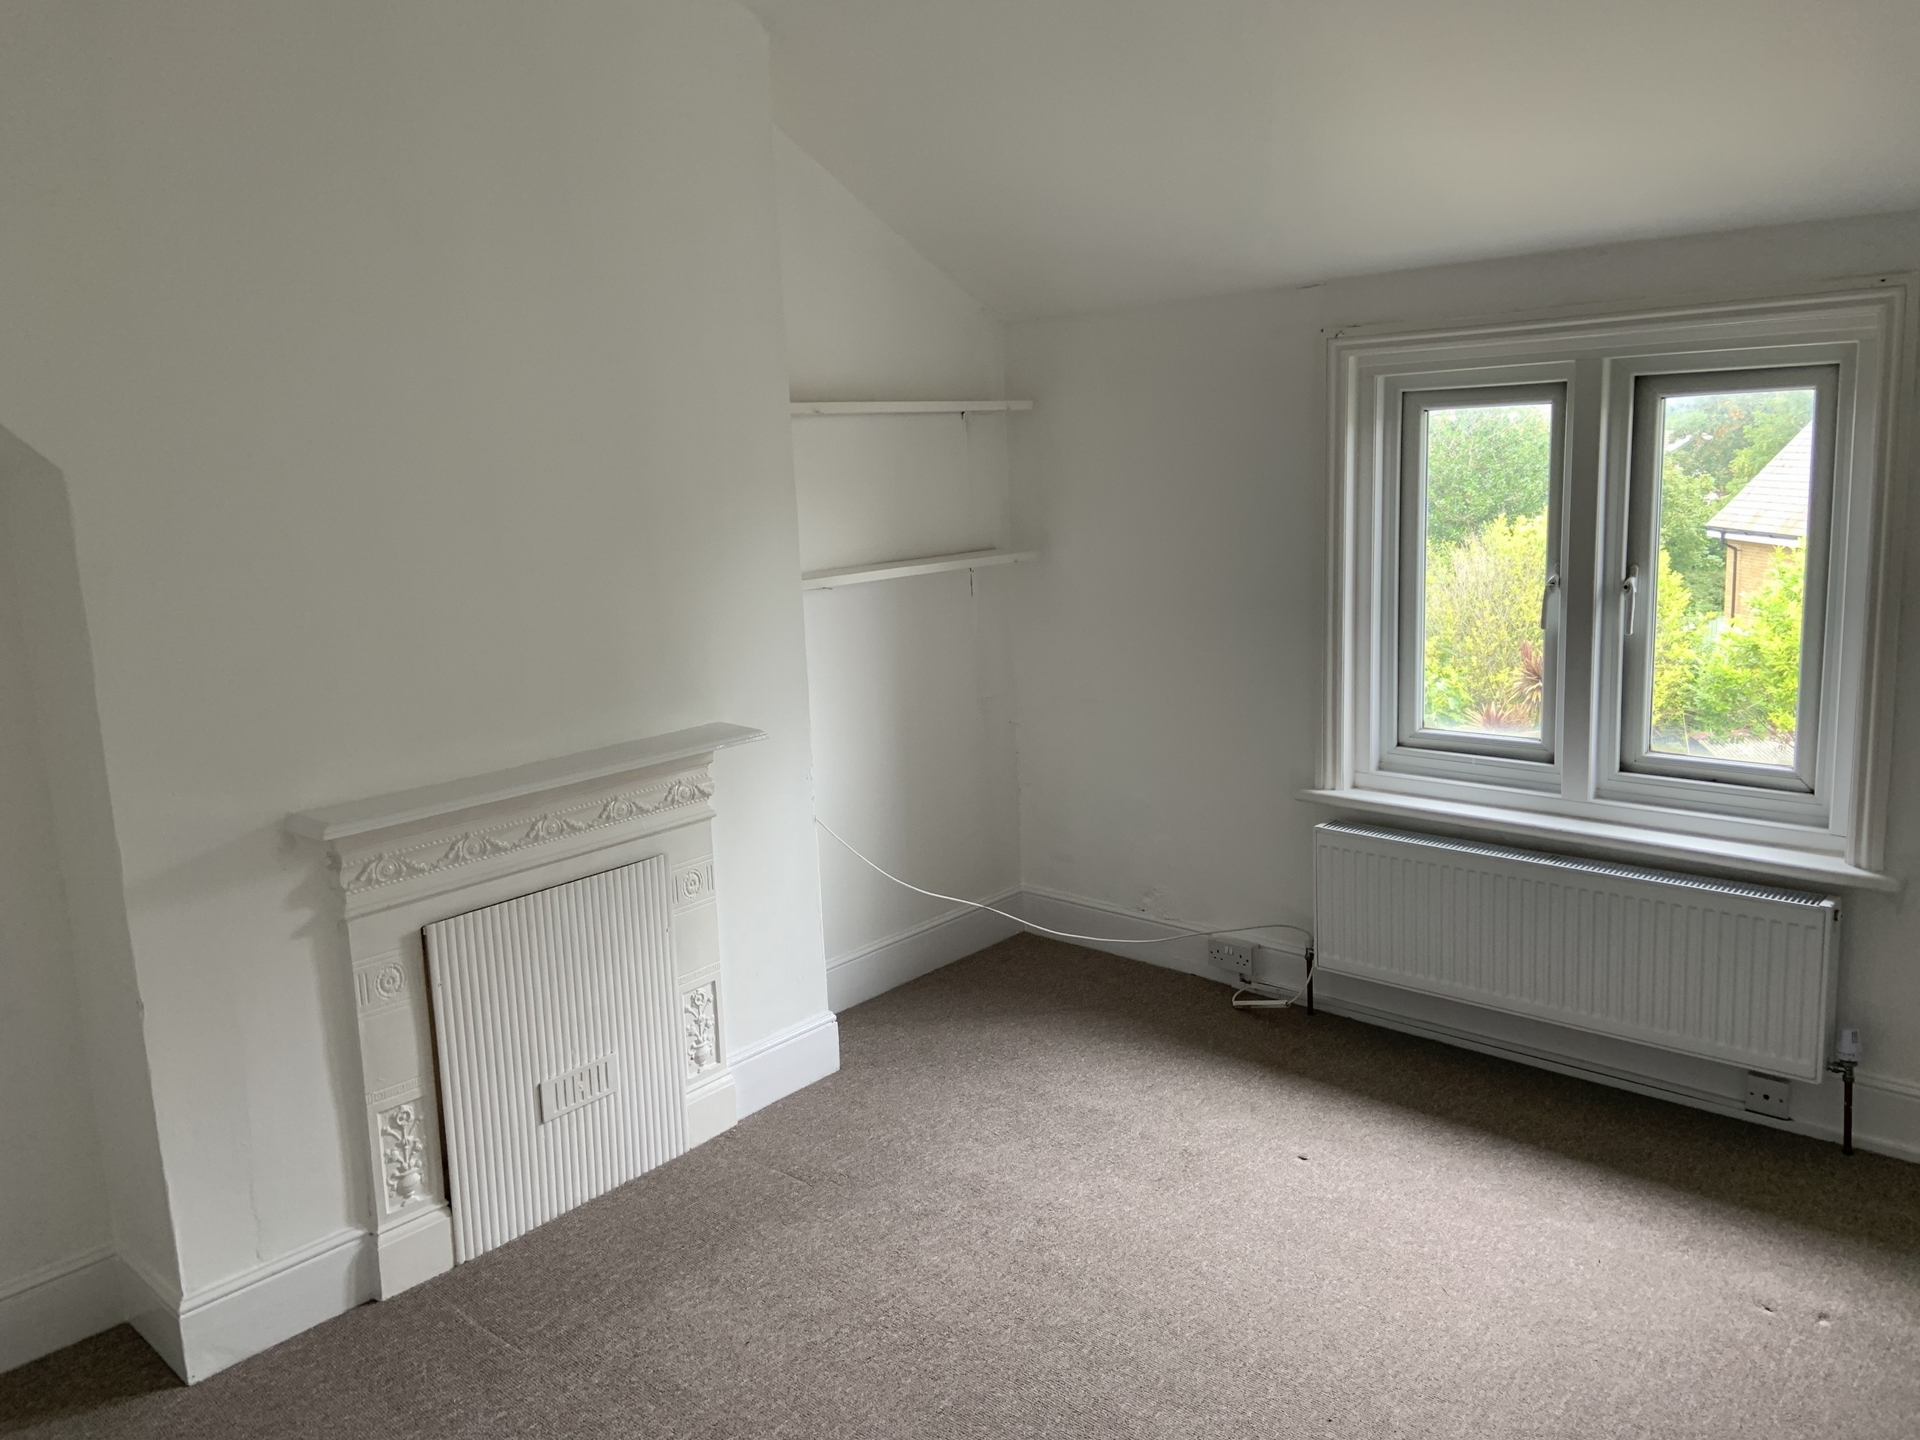 3 bed flat to rent in Station Approach, Birchington  - Property Image 5